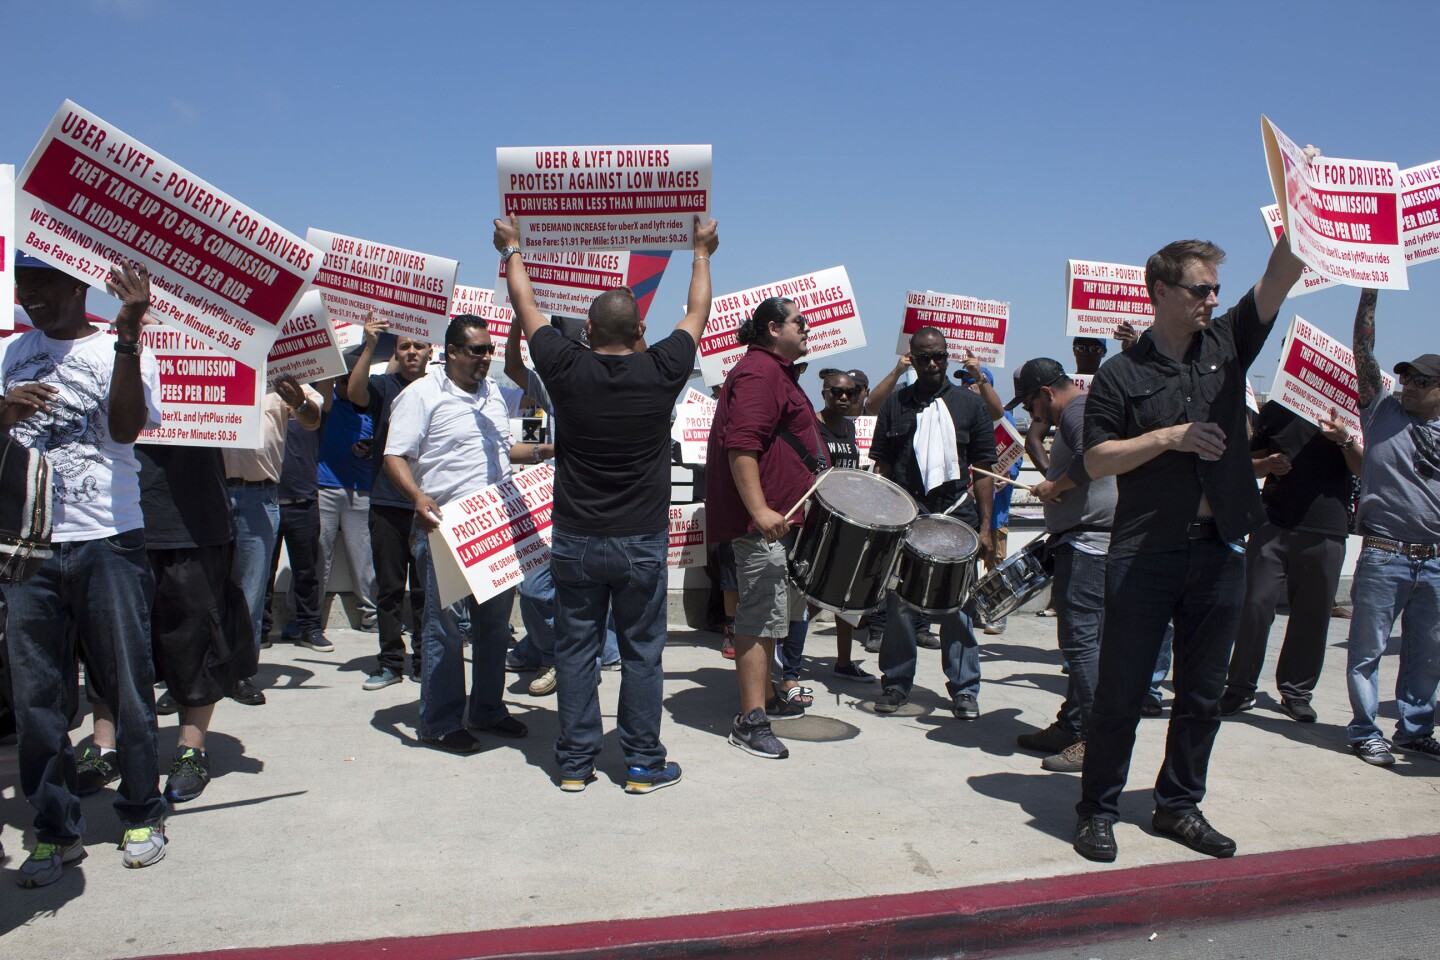 LAX Rideshare Protesters hold signs curbside